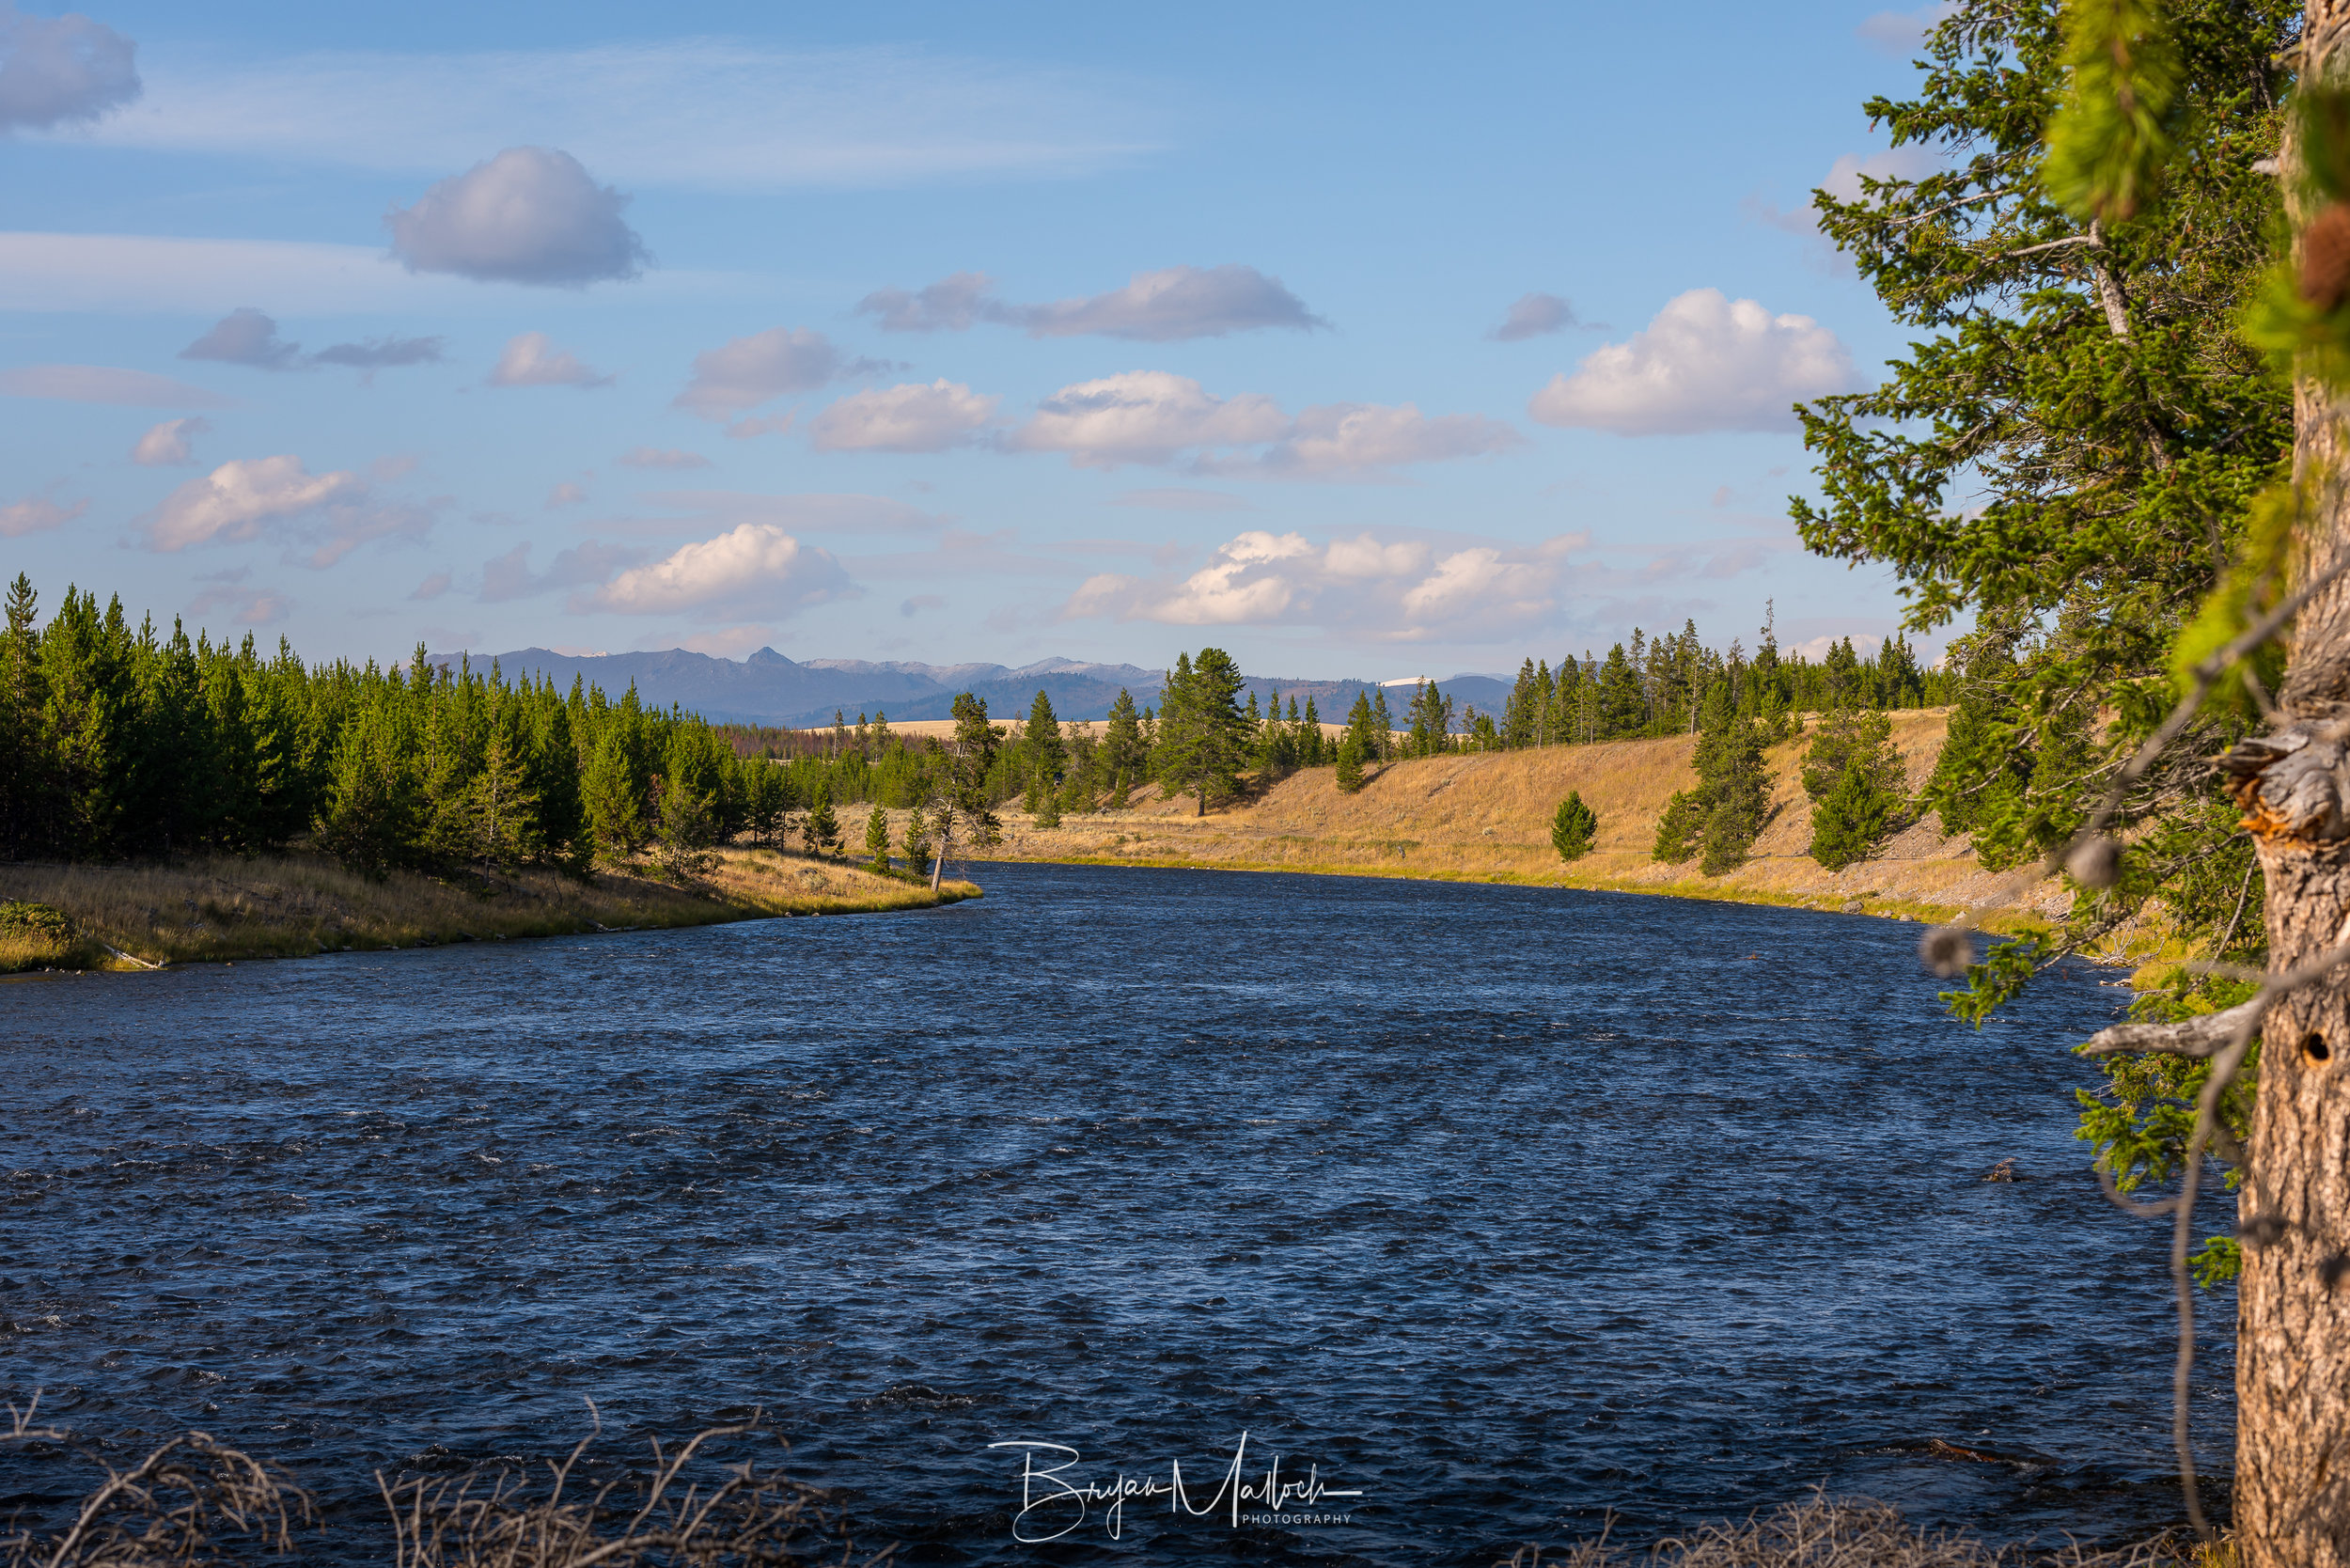 The Yellowstone River greets us as we enter the park through West Yellowstone